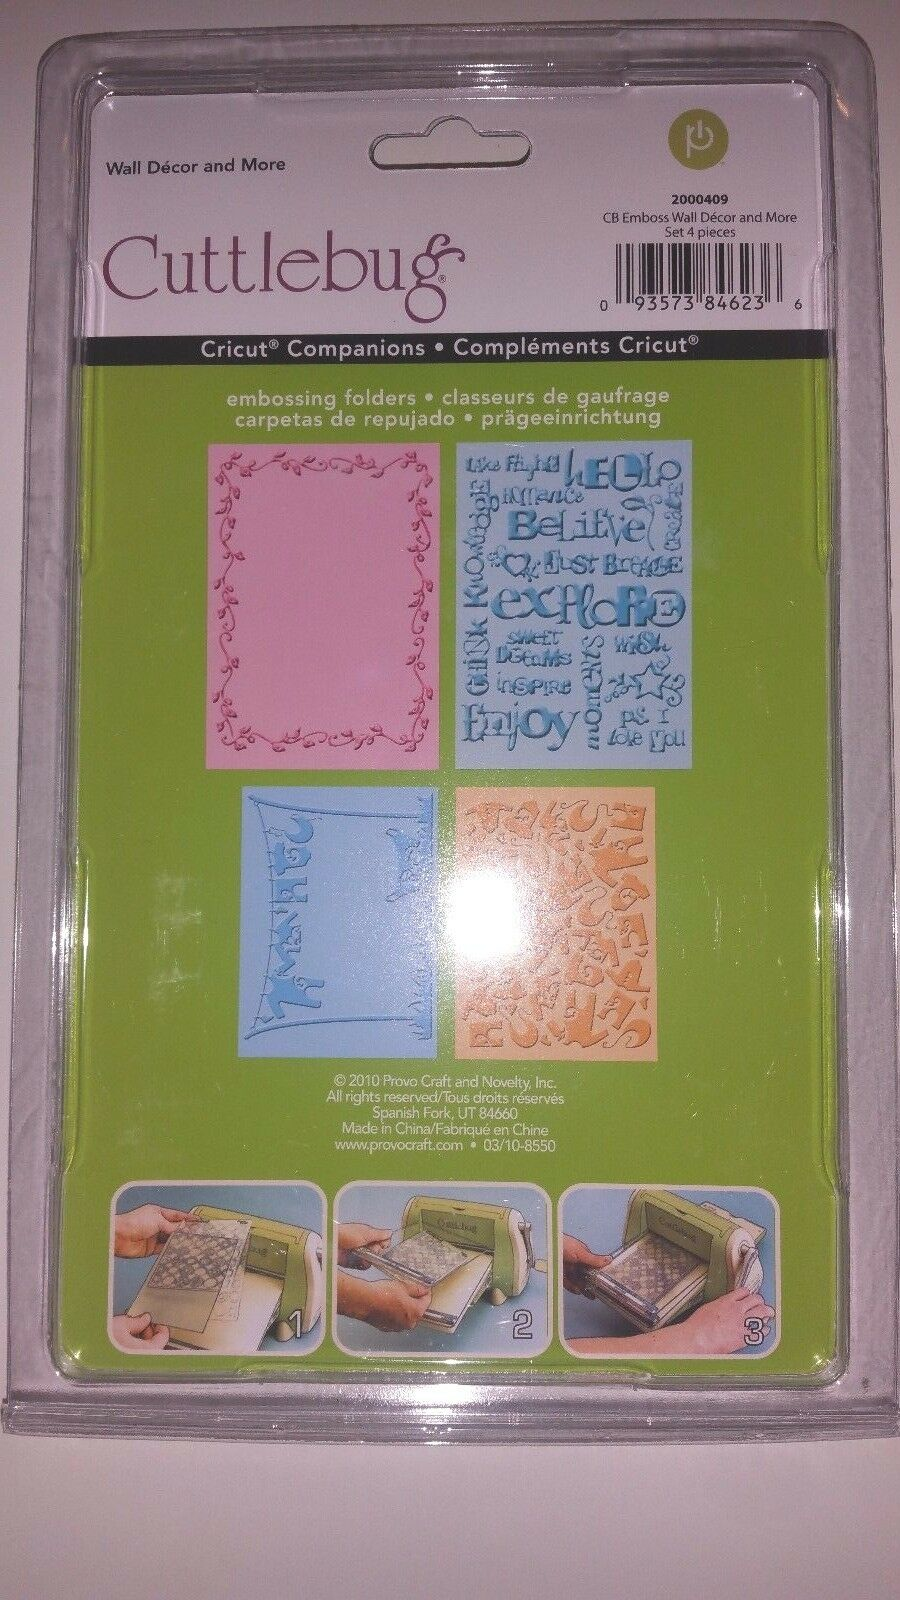 Cuttlebug Embossing Set Wall Decor and More 2000409